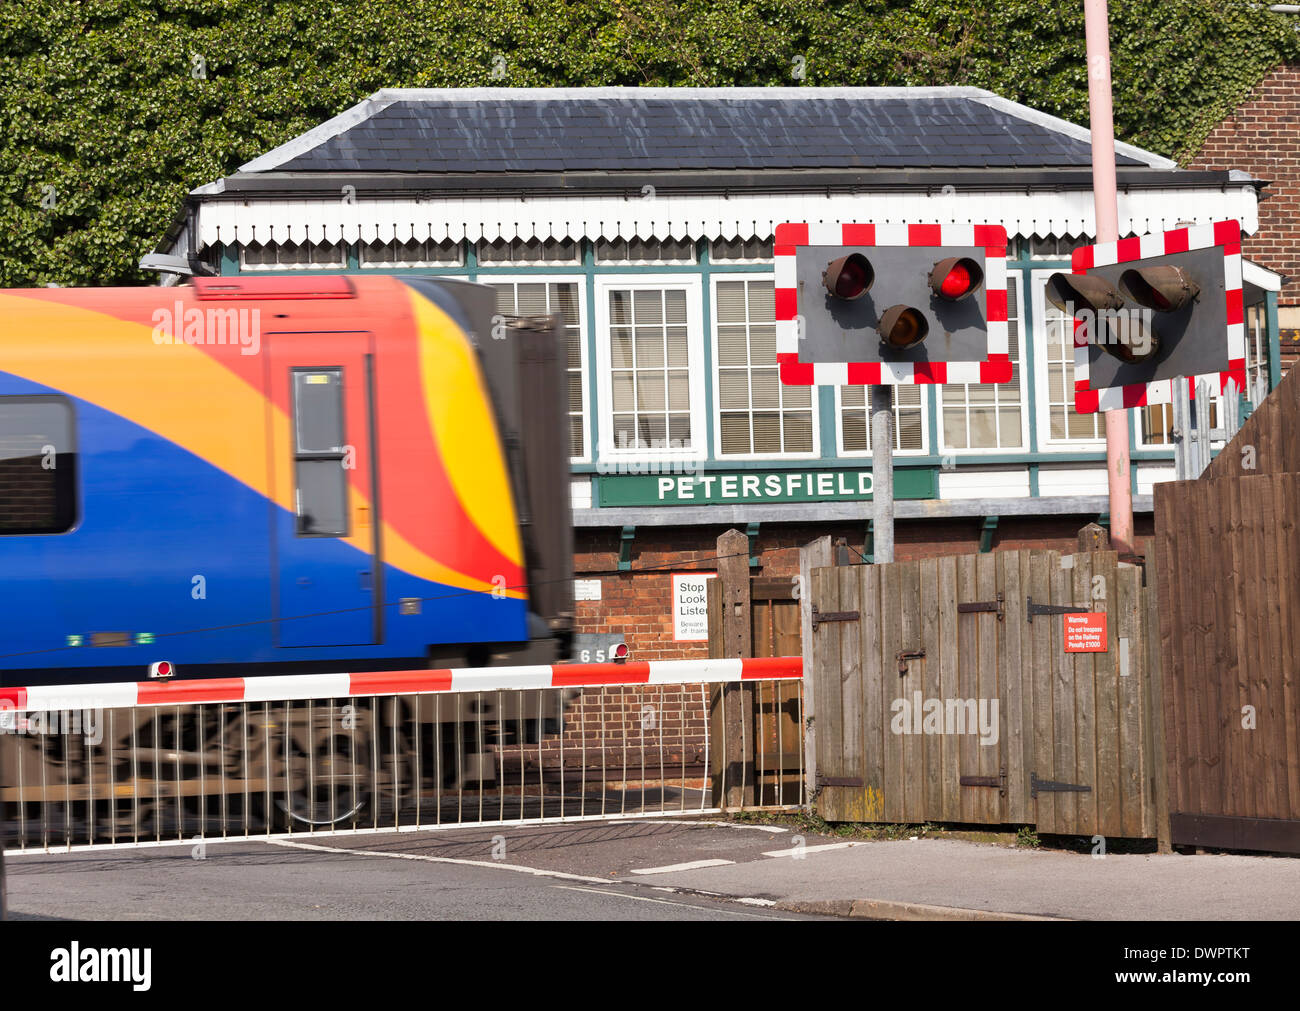 Train passing Petersfield 1880's Type 3 Signal Box with down full barrier type level crossing. - Stock Image